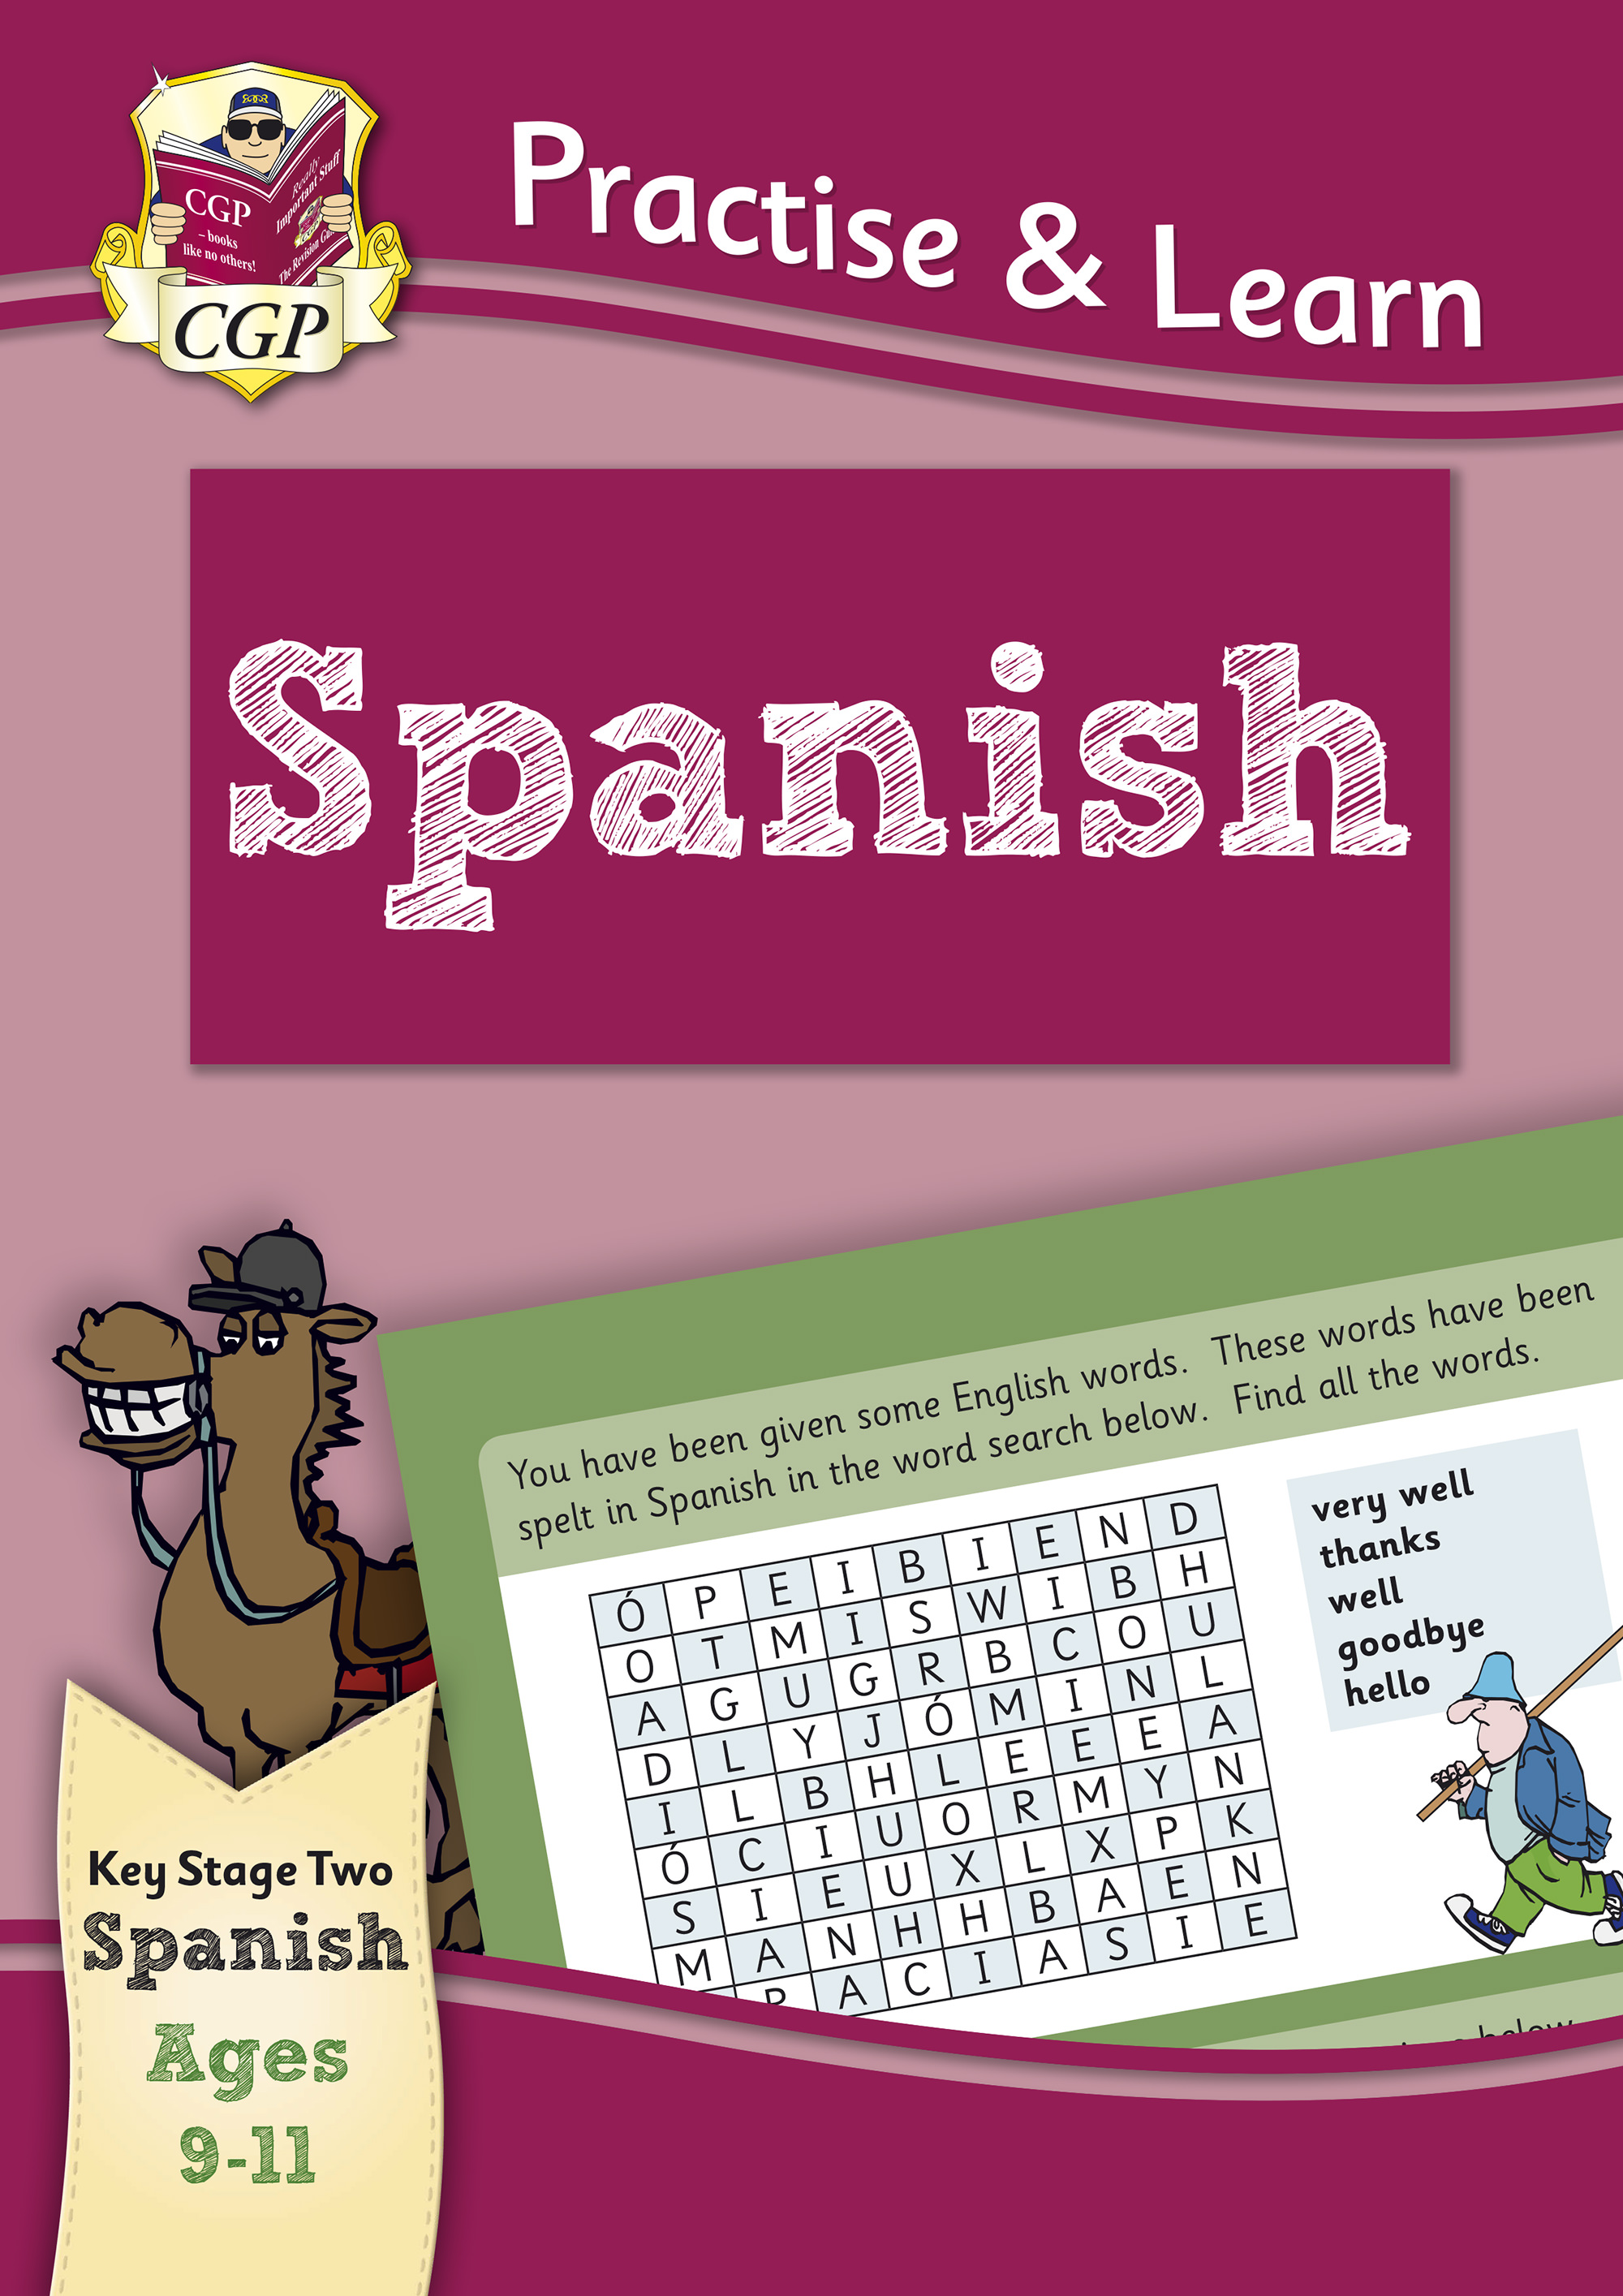 SPP6Q22D - Practise & Learn: Spanish for Ages 9-11 Online Edition